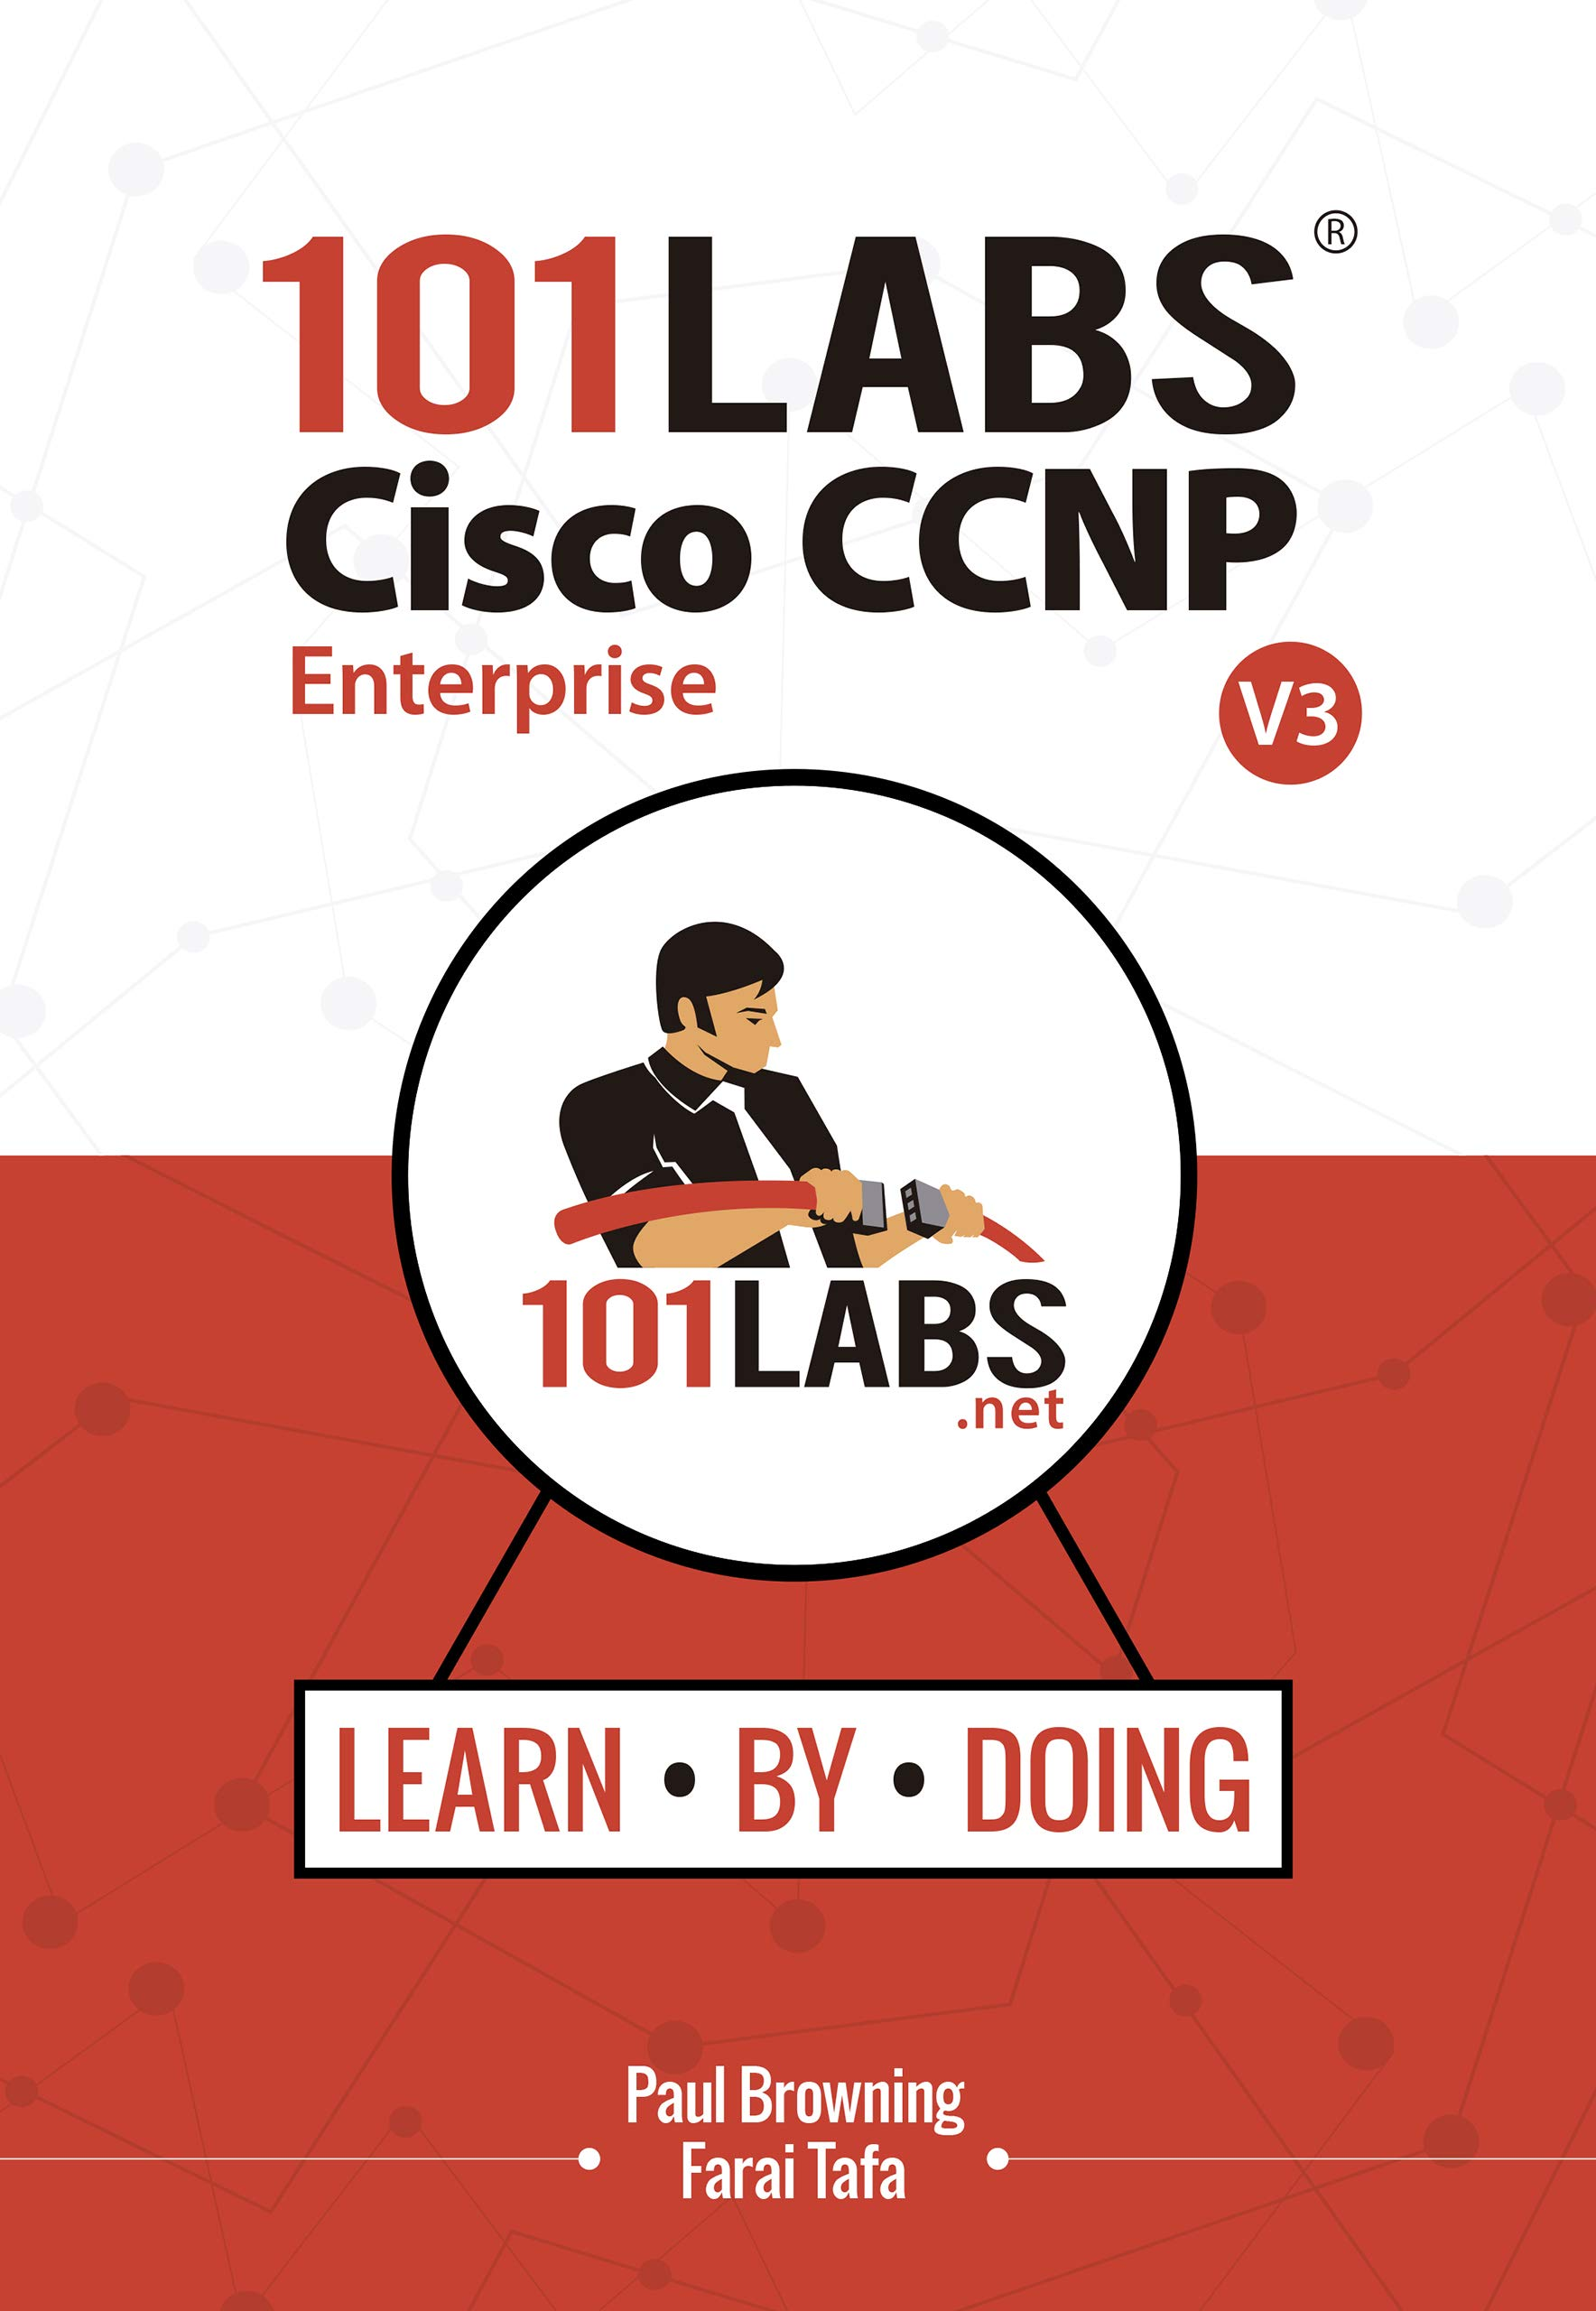 Image Of101 Labs - Cisco CCNP Enterprise: Hands-on Labs For The CCNP 350-401 ENCOR 300-410 ENARSI Exams (English Edition)